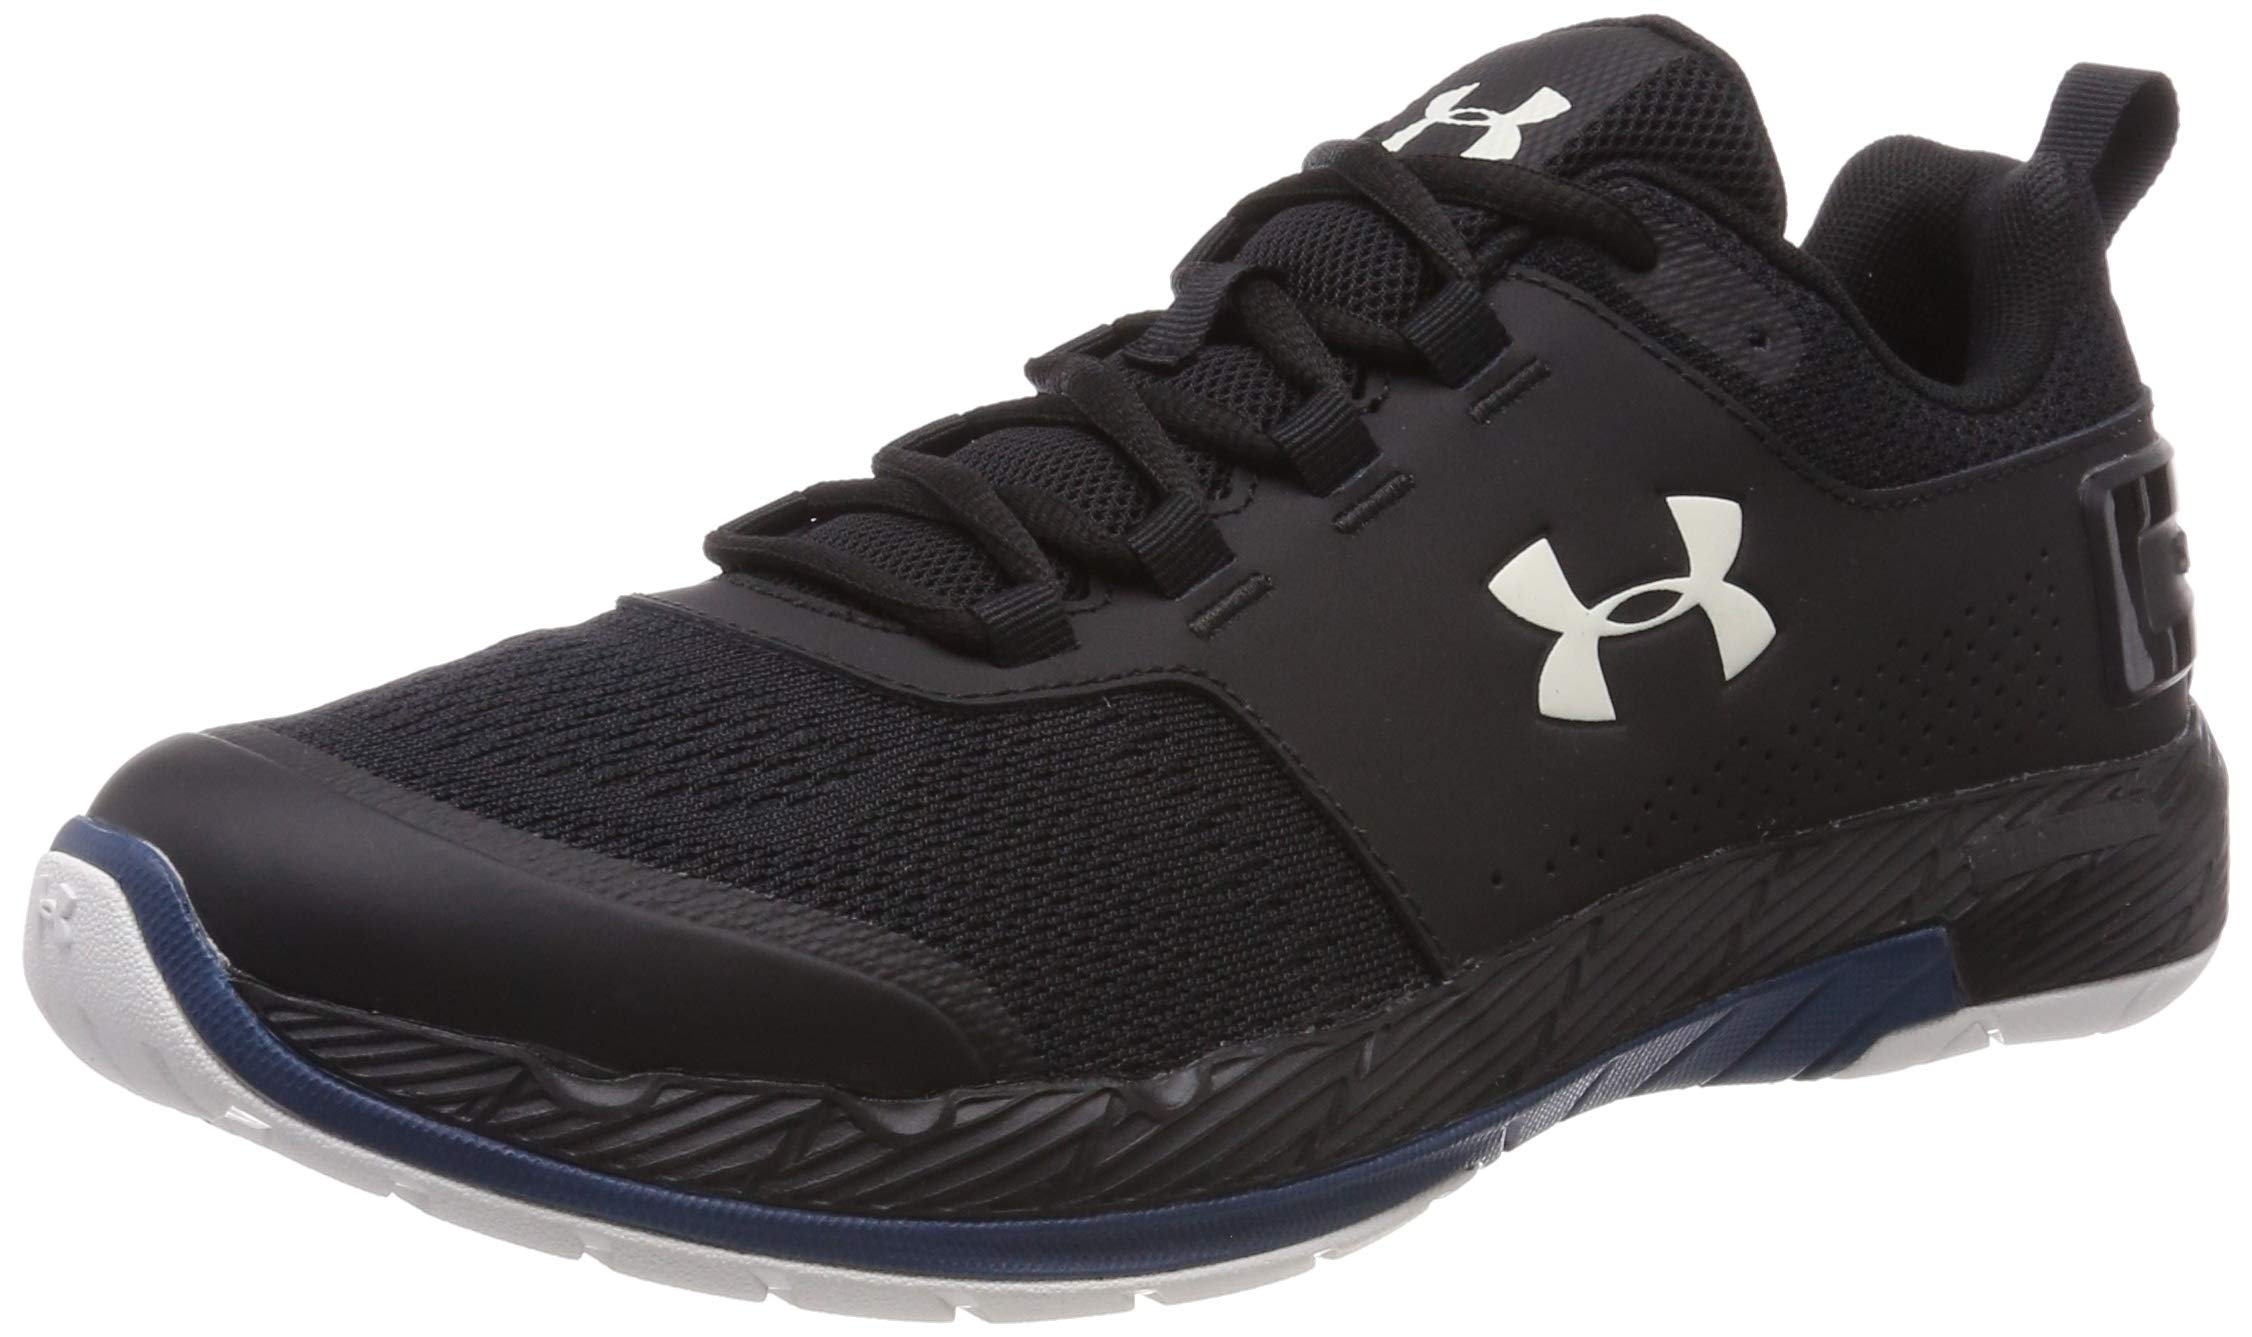 Under Armour Men's Commit TR EX Sneaker, Black (008)/Petrol Blue, 7.5 M US by Under Armour (Image #1)